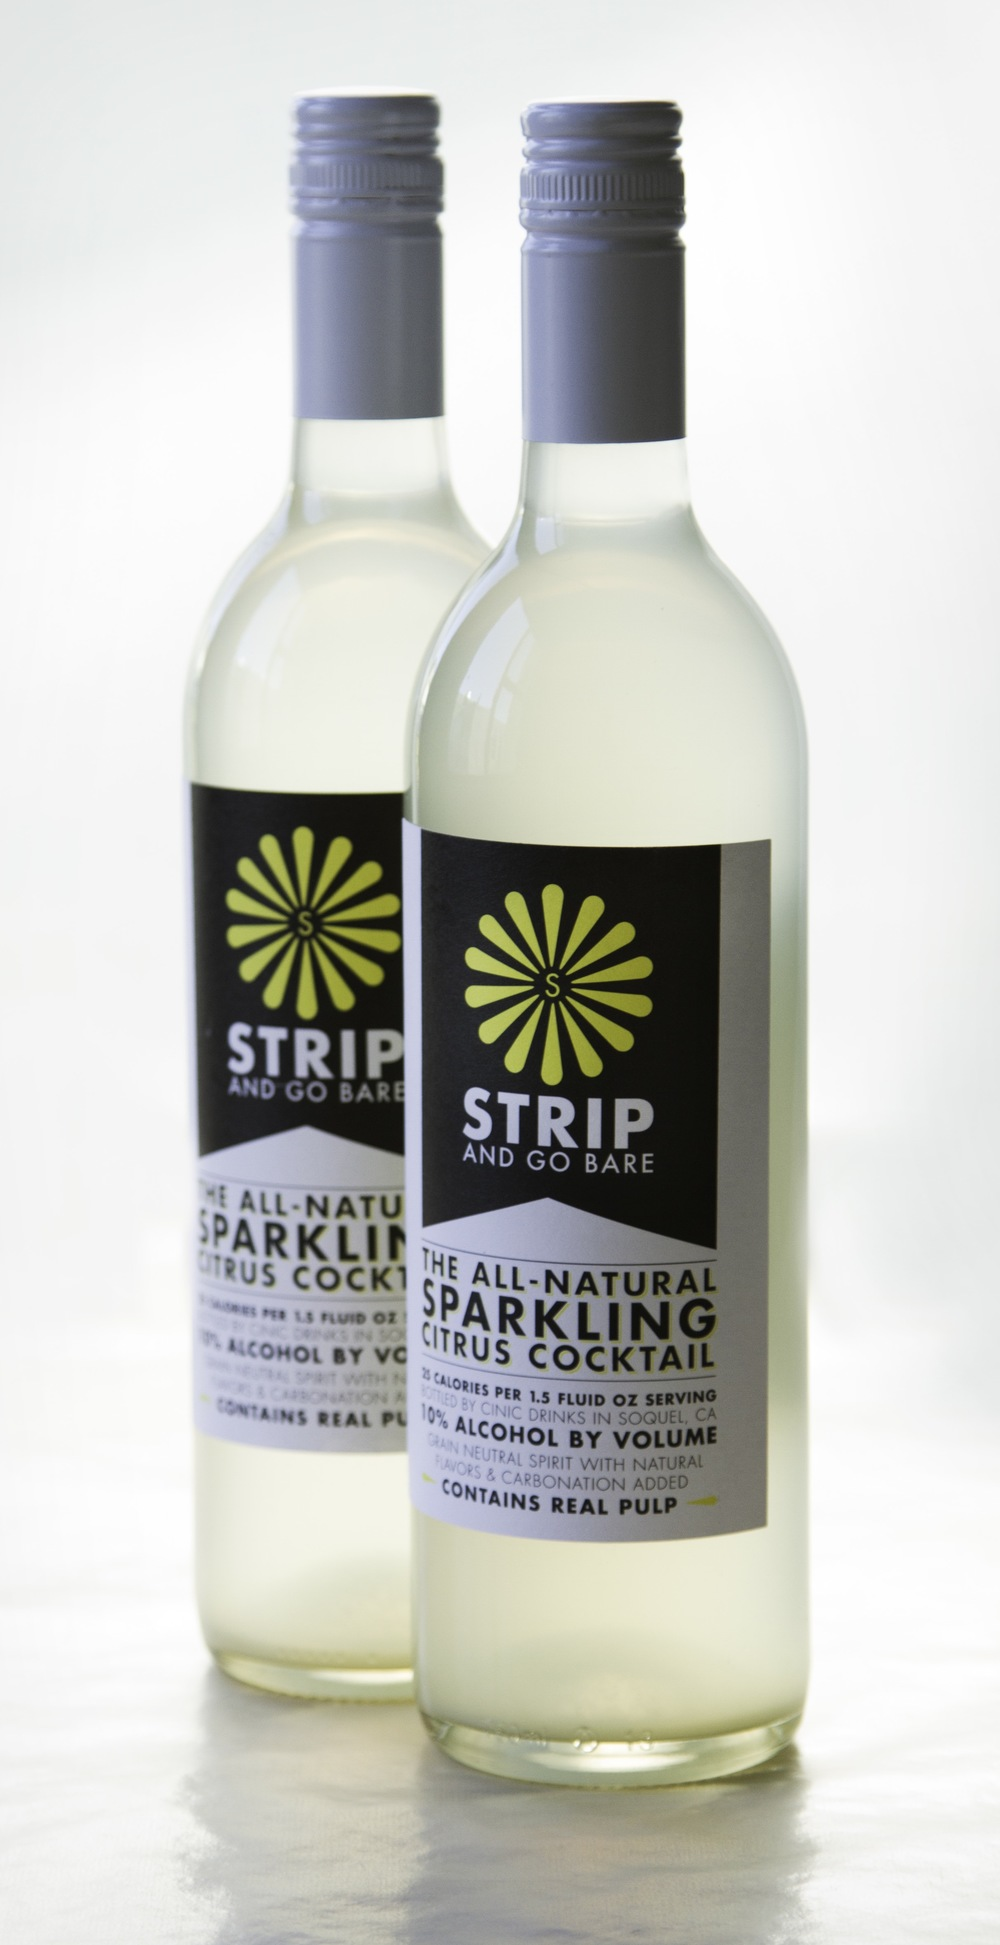 Strip and Go Bare Bottle Shot.jpg